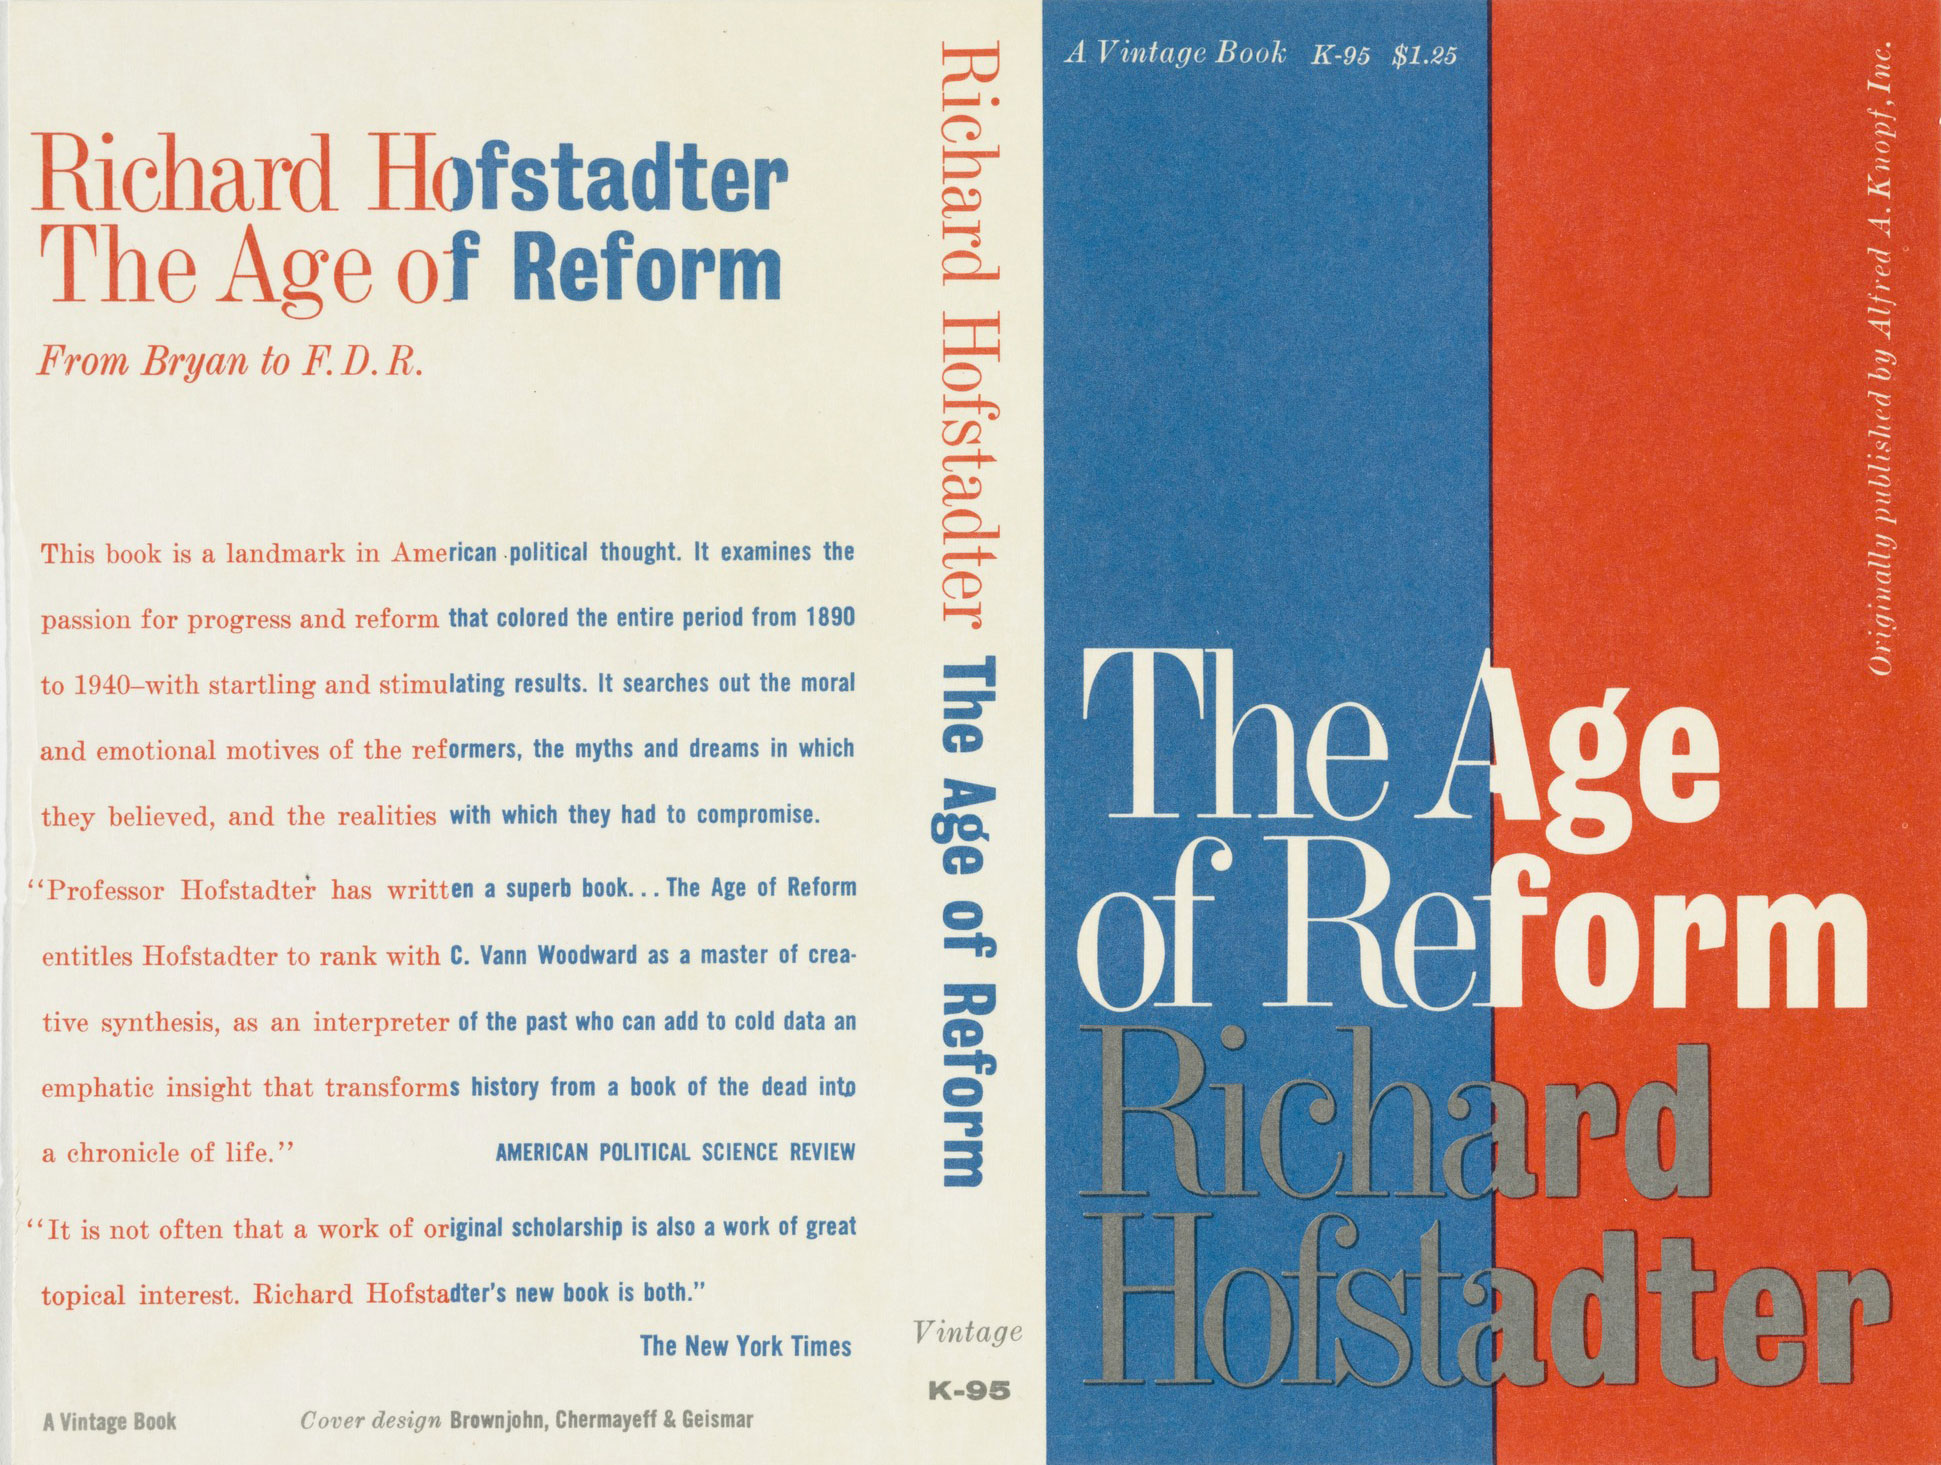 Chermayeff-and-Geismar-couverture-livre-The-Age-of-Reform-1955